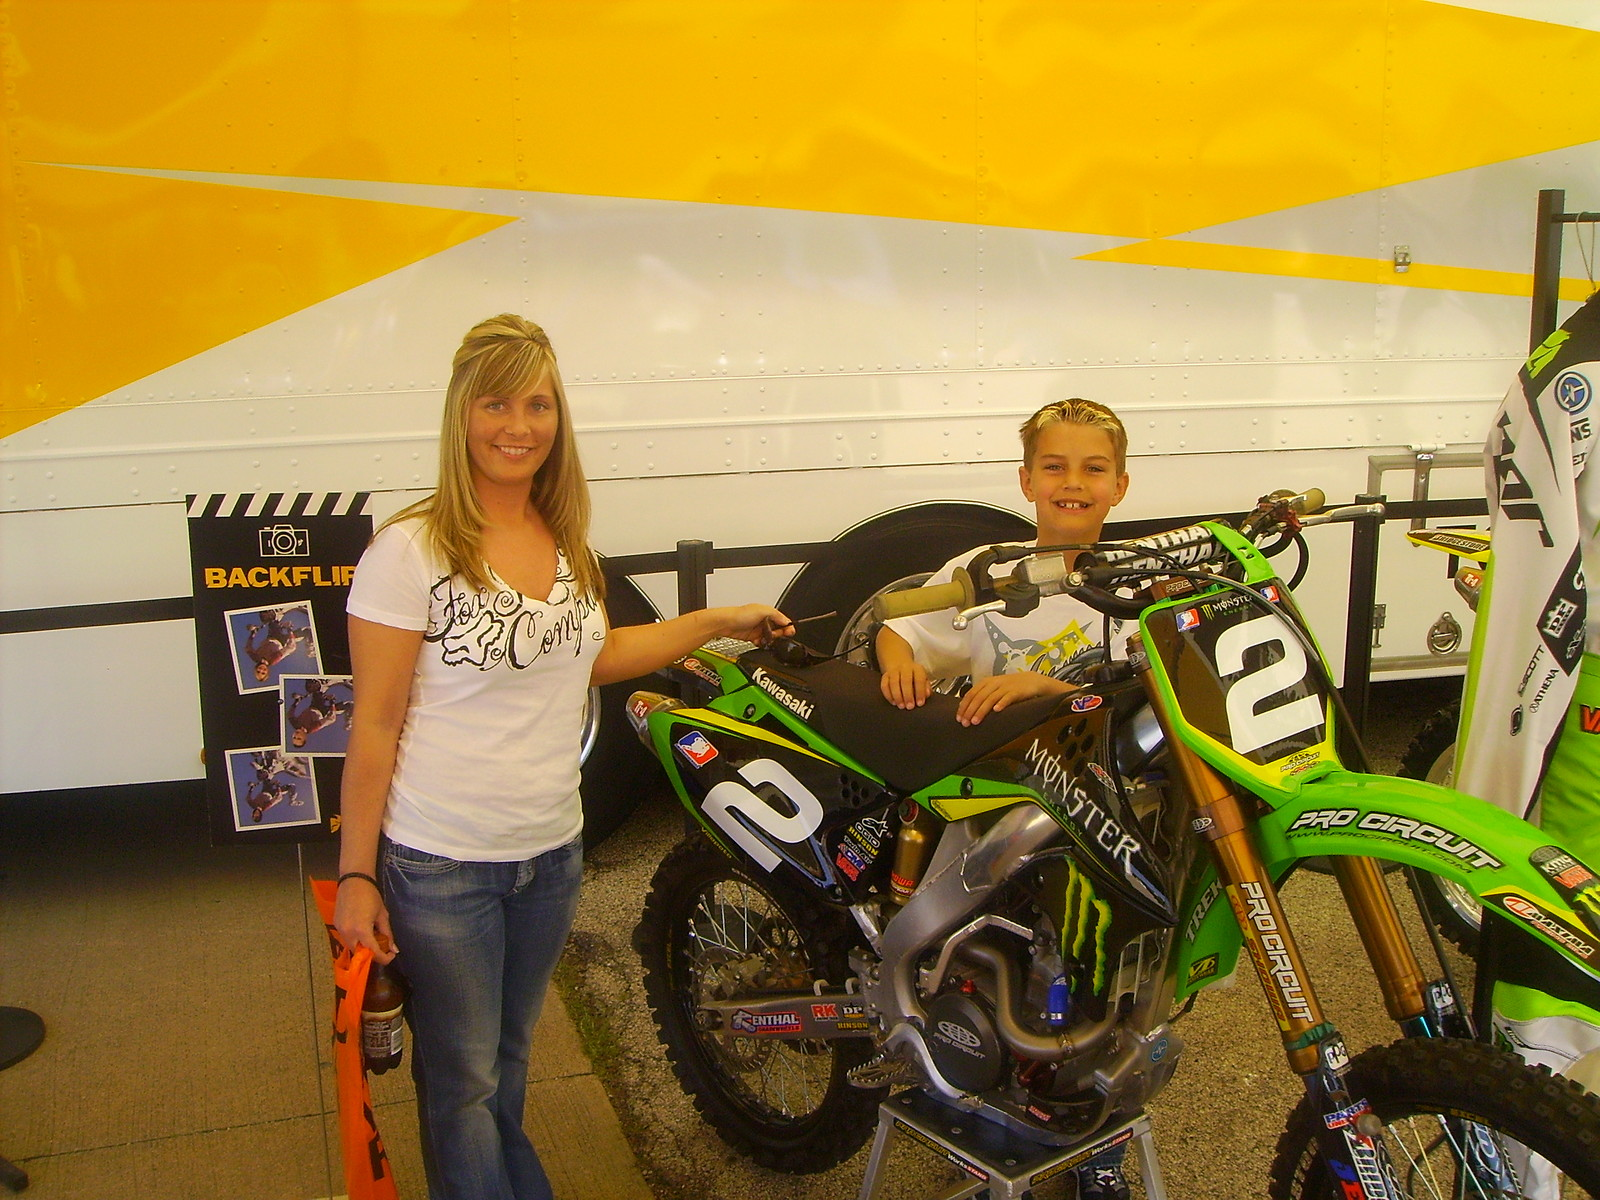 Wife and nephew with RV's Kawi - Slim Bill - Motocross Pictures - Vital MX